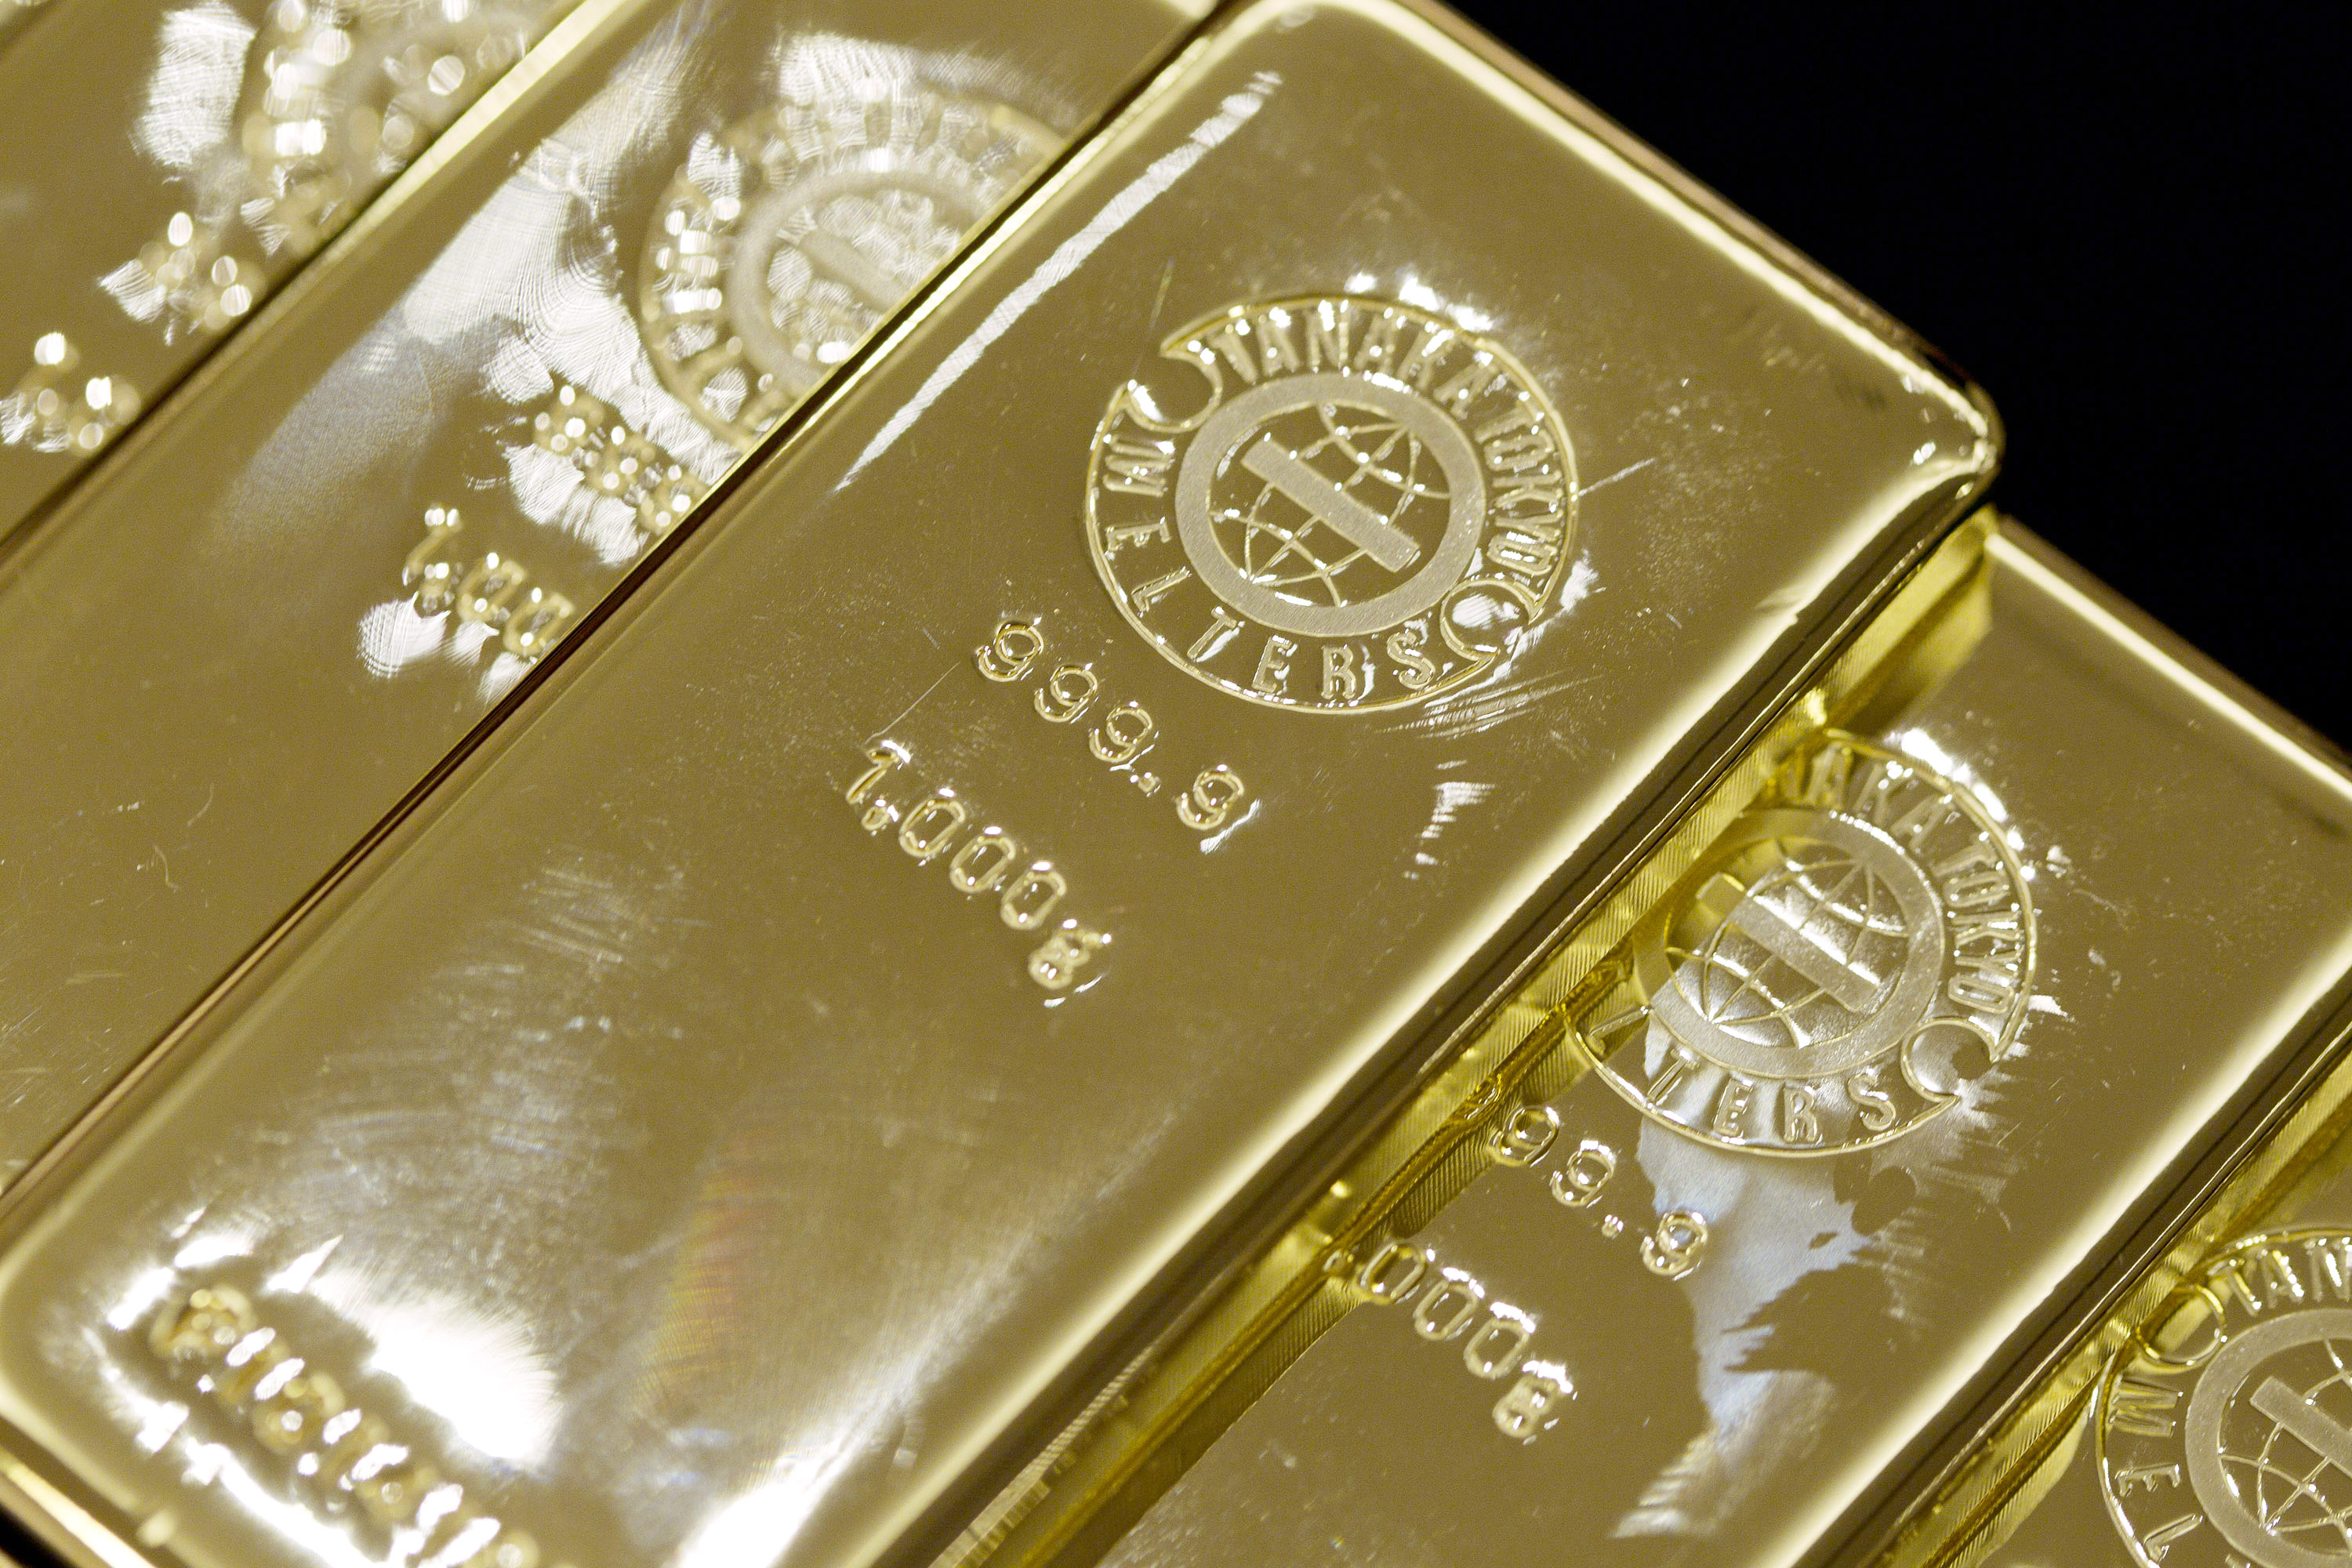 All that glitter: Gold bars are displayed at the Tanaka Kikinzoku Jewelry store in Tokyo on July 10.   BLOOMBERG